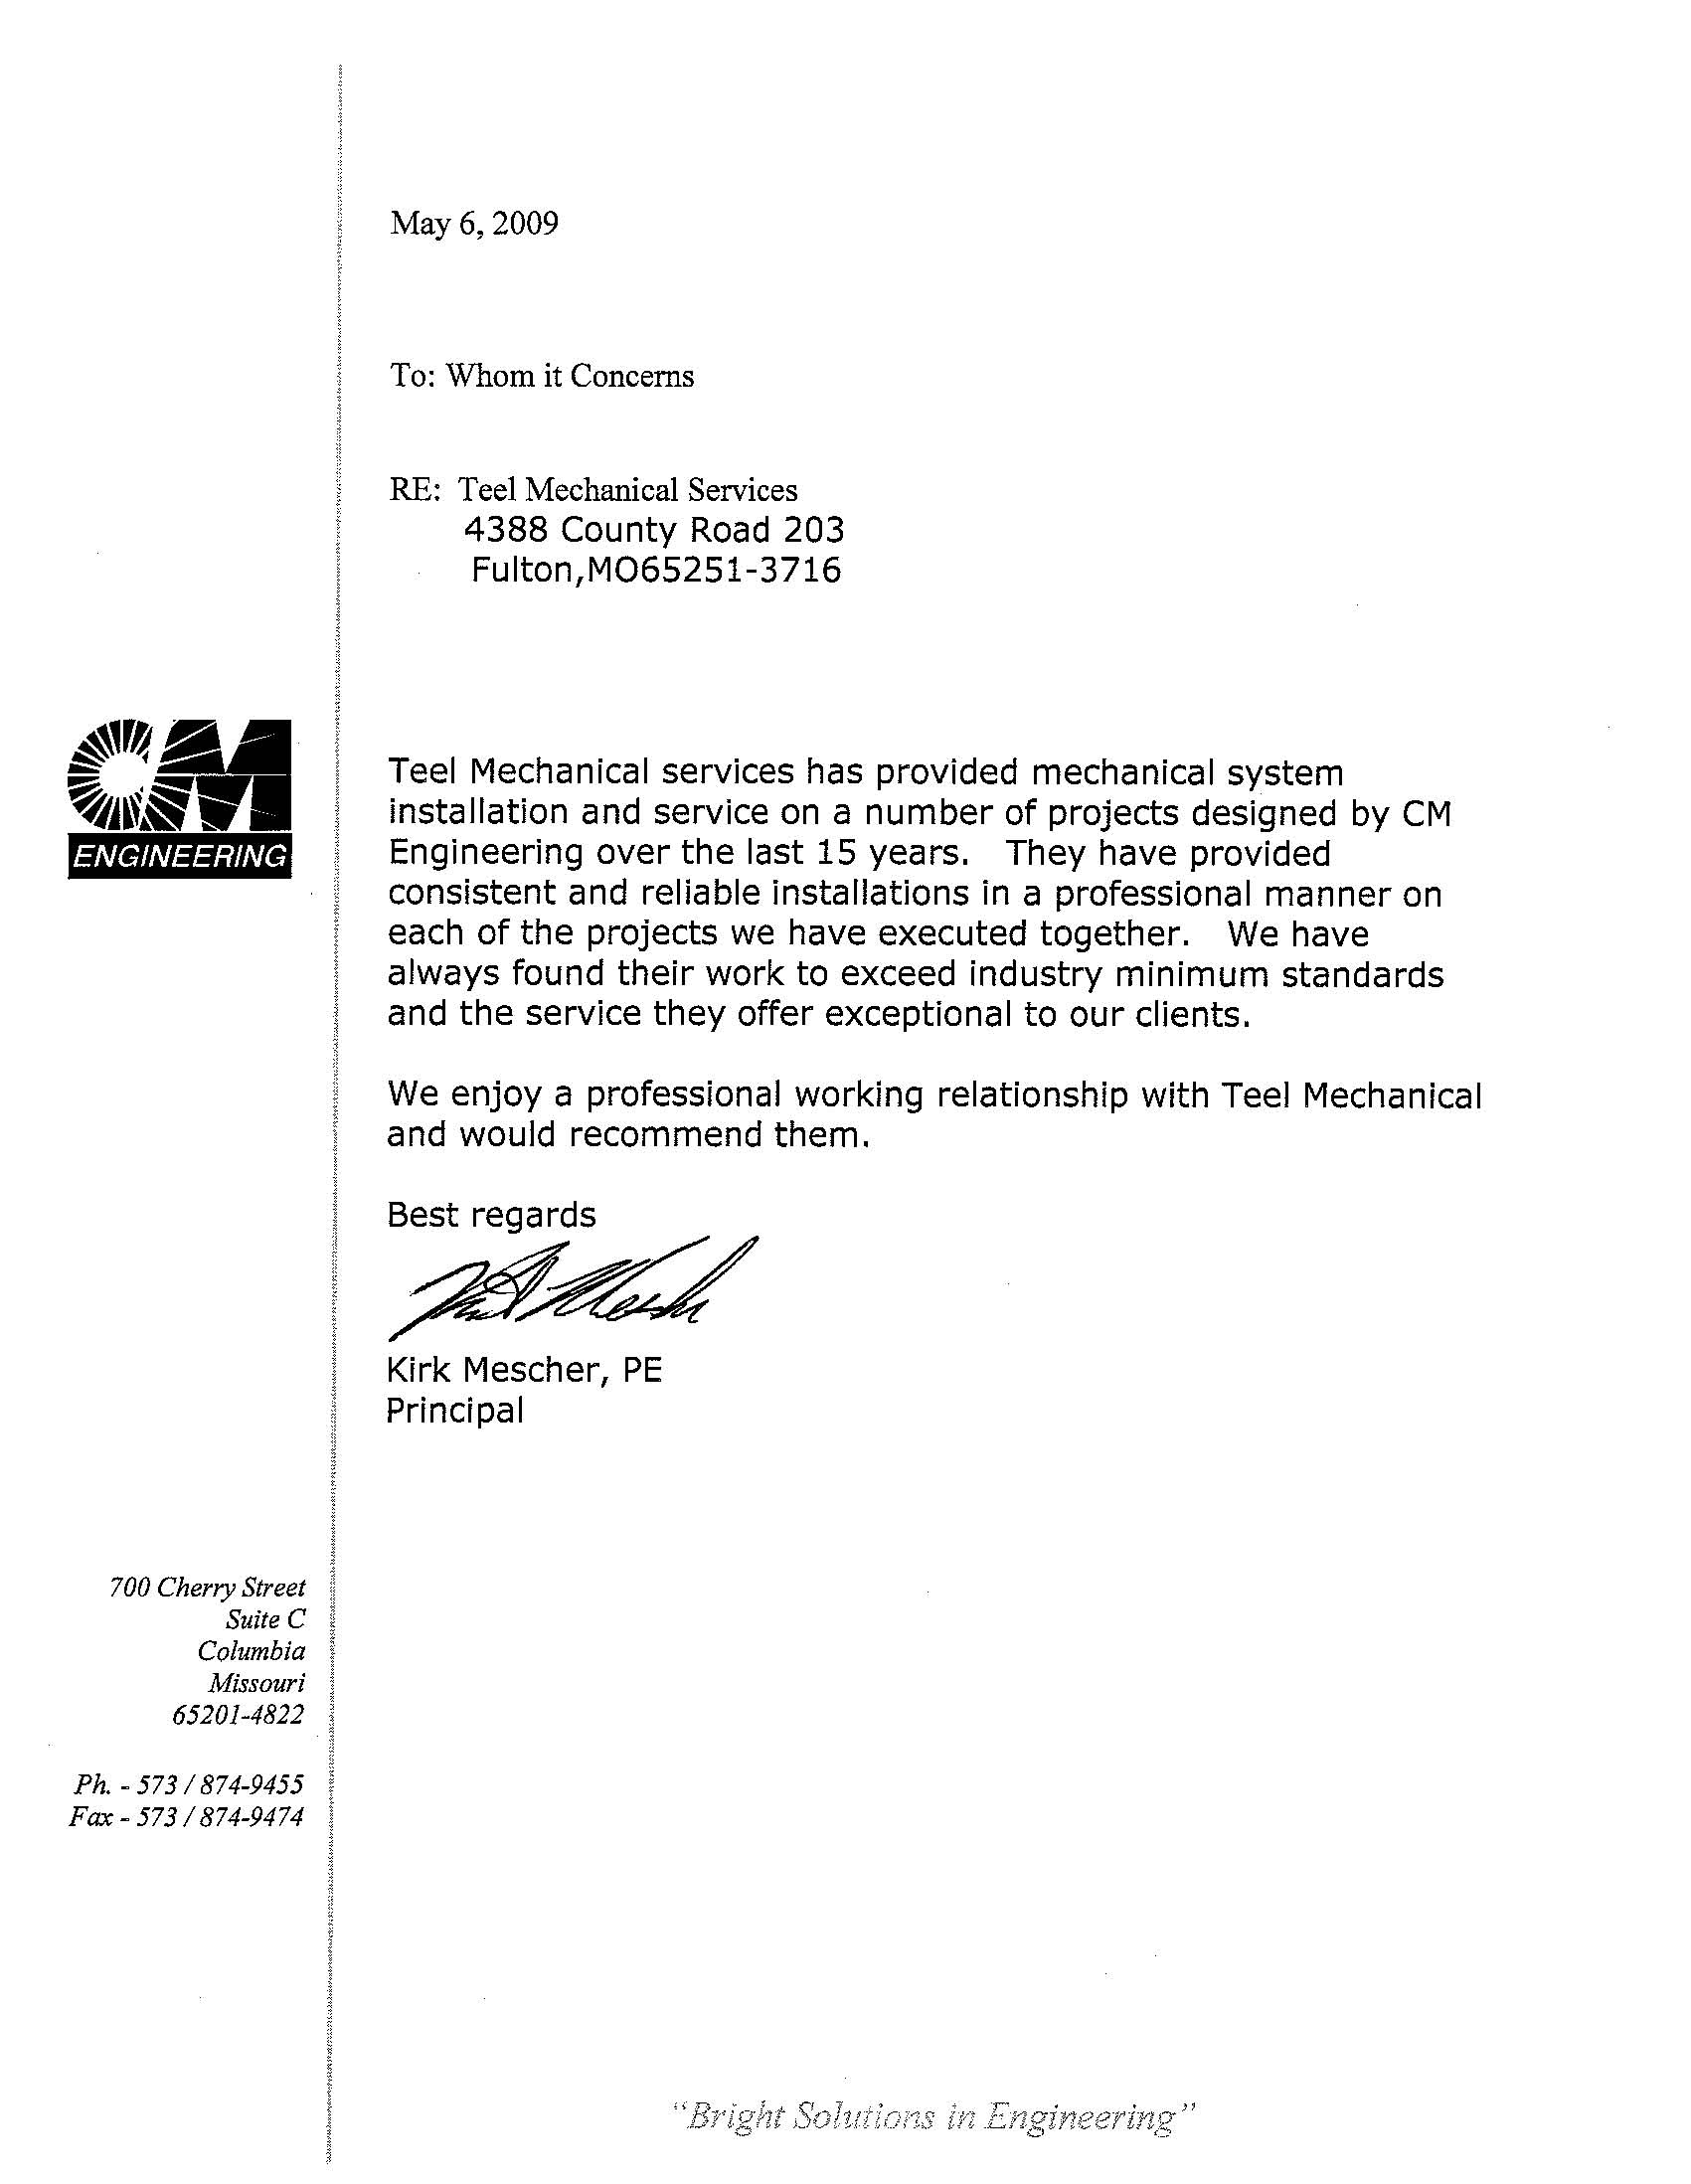 letter of recommendation for civil engineer - Seckin.ayodhya.co